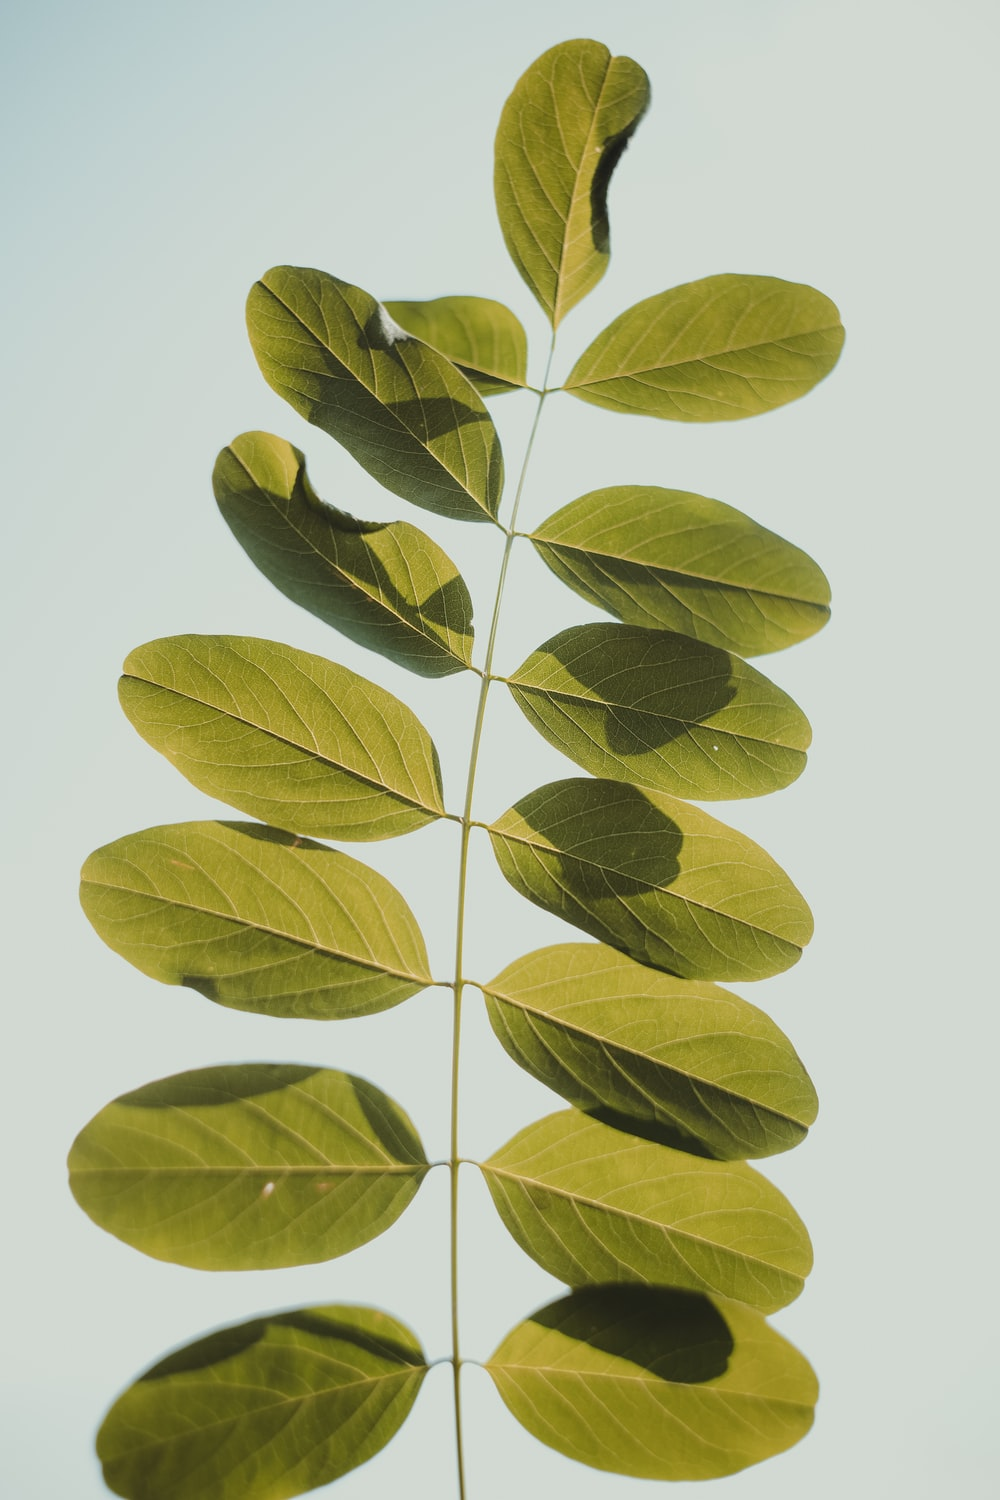 green-leafed plant